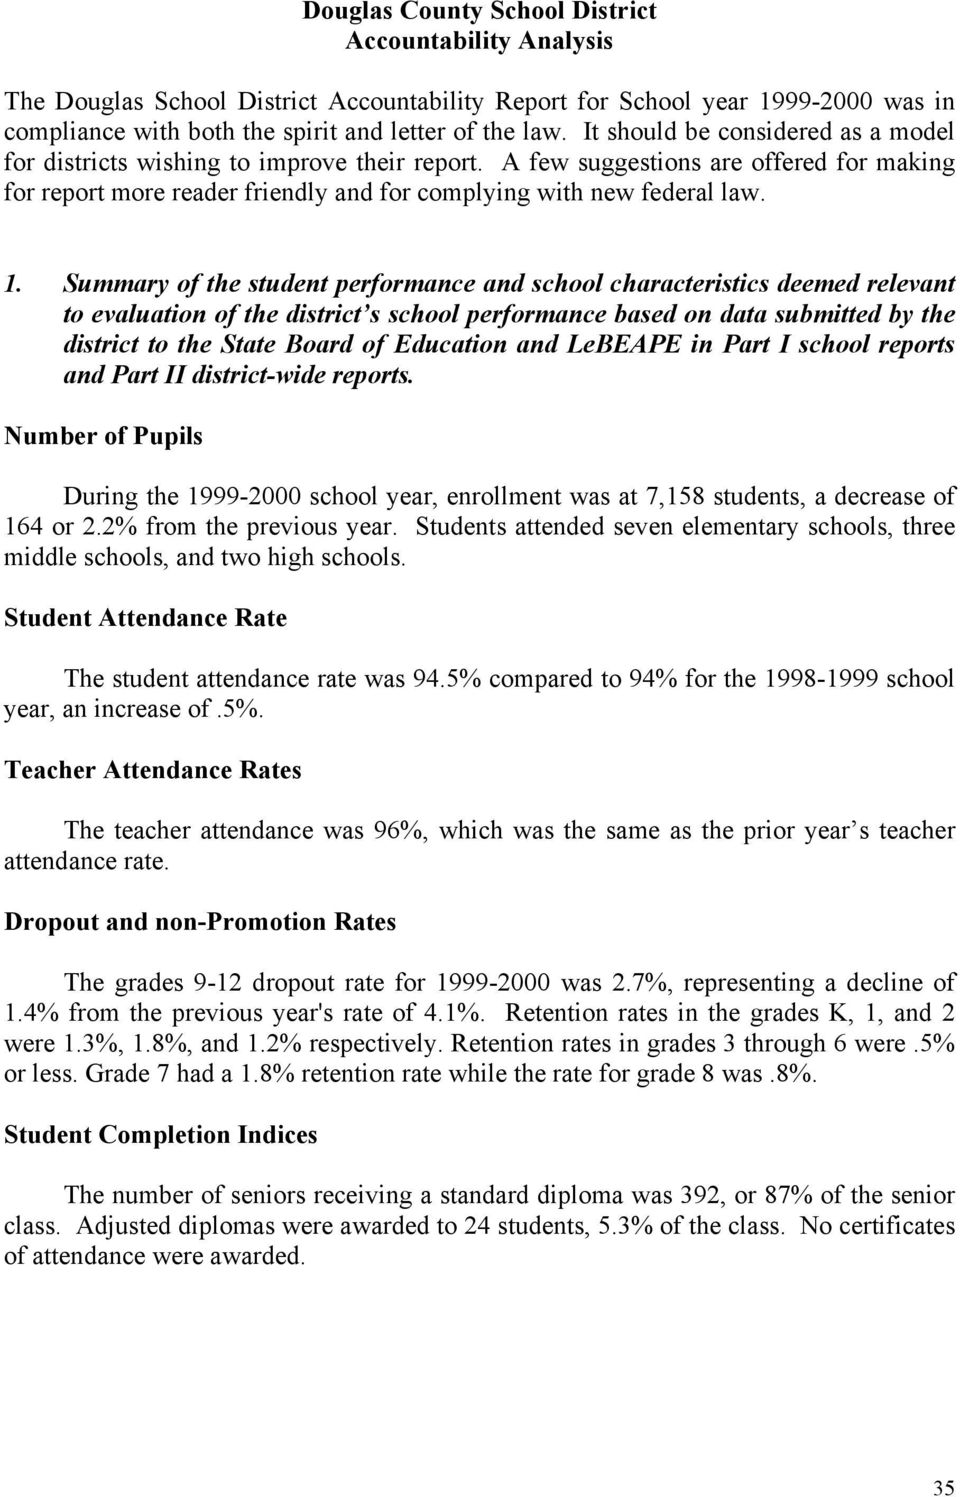 Summary of the student performance and school characteristics deemed relevant to evaluation of the district s school performance based on data submitted by the district to the State Board of